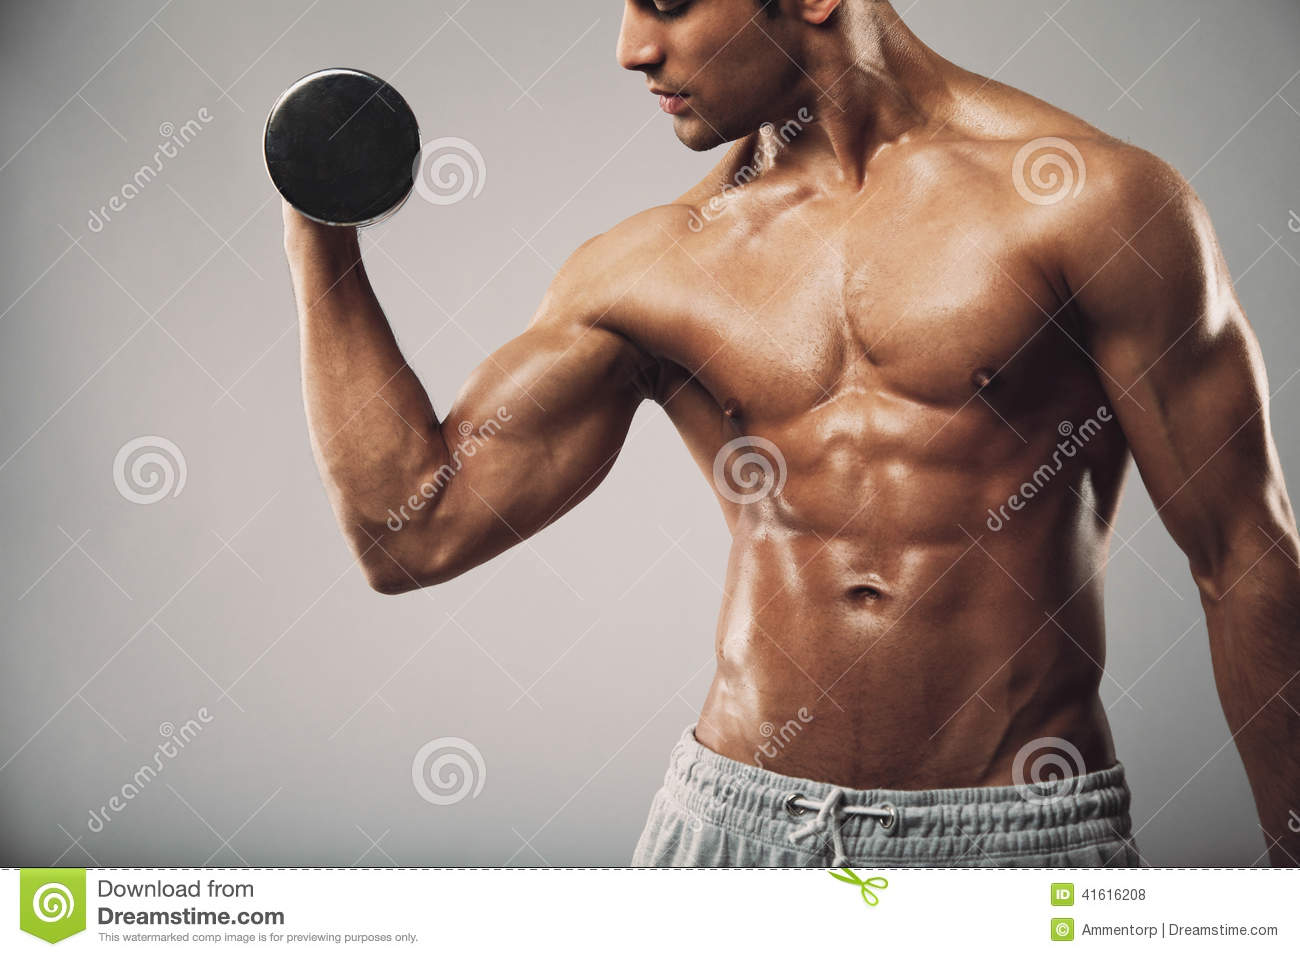 Gym 3d Wallpaper Man Working Out With Dumbbells Stock Photo Image 41616208